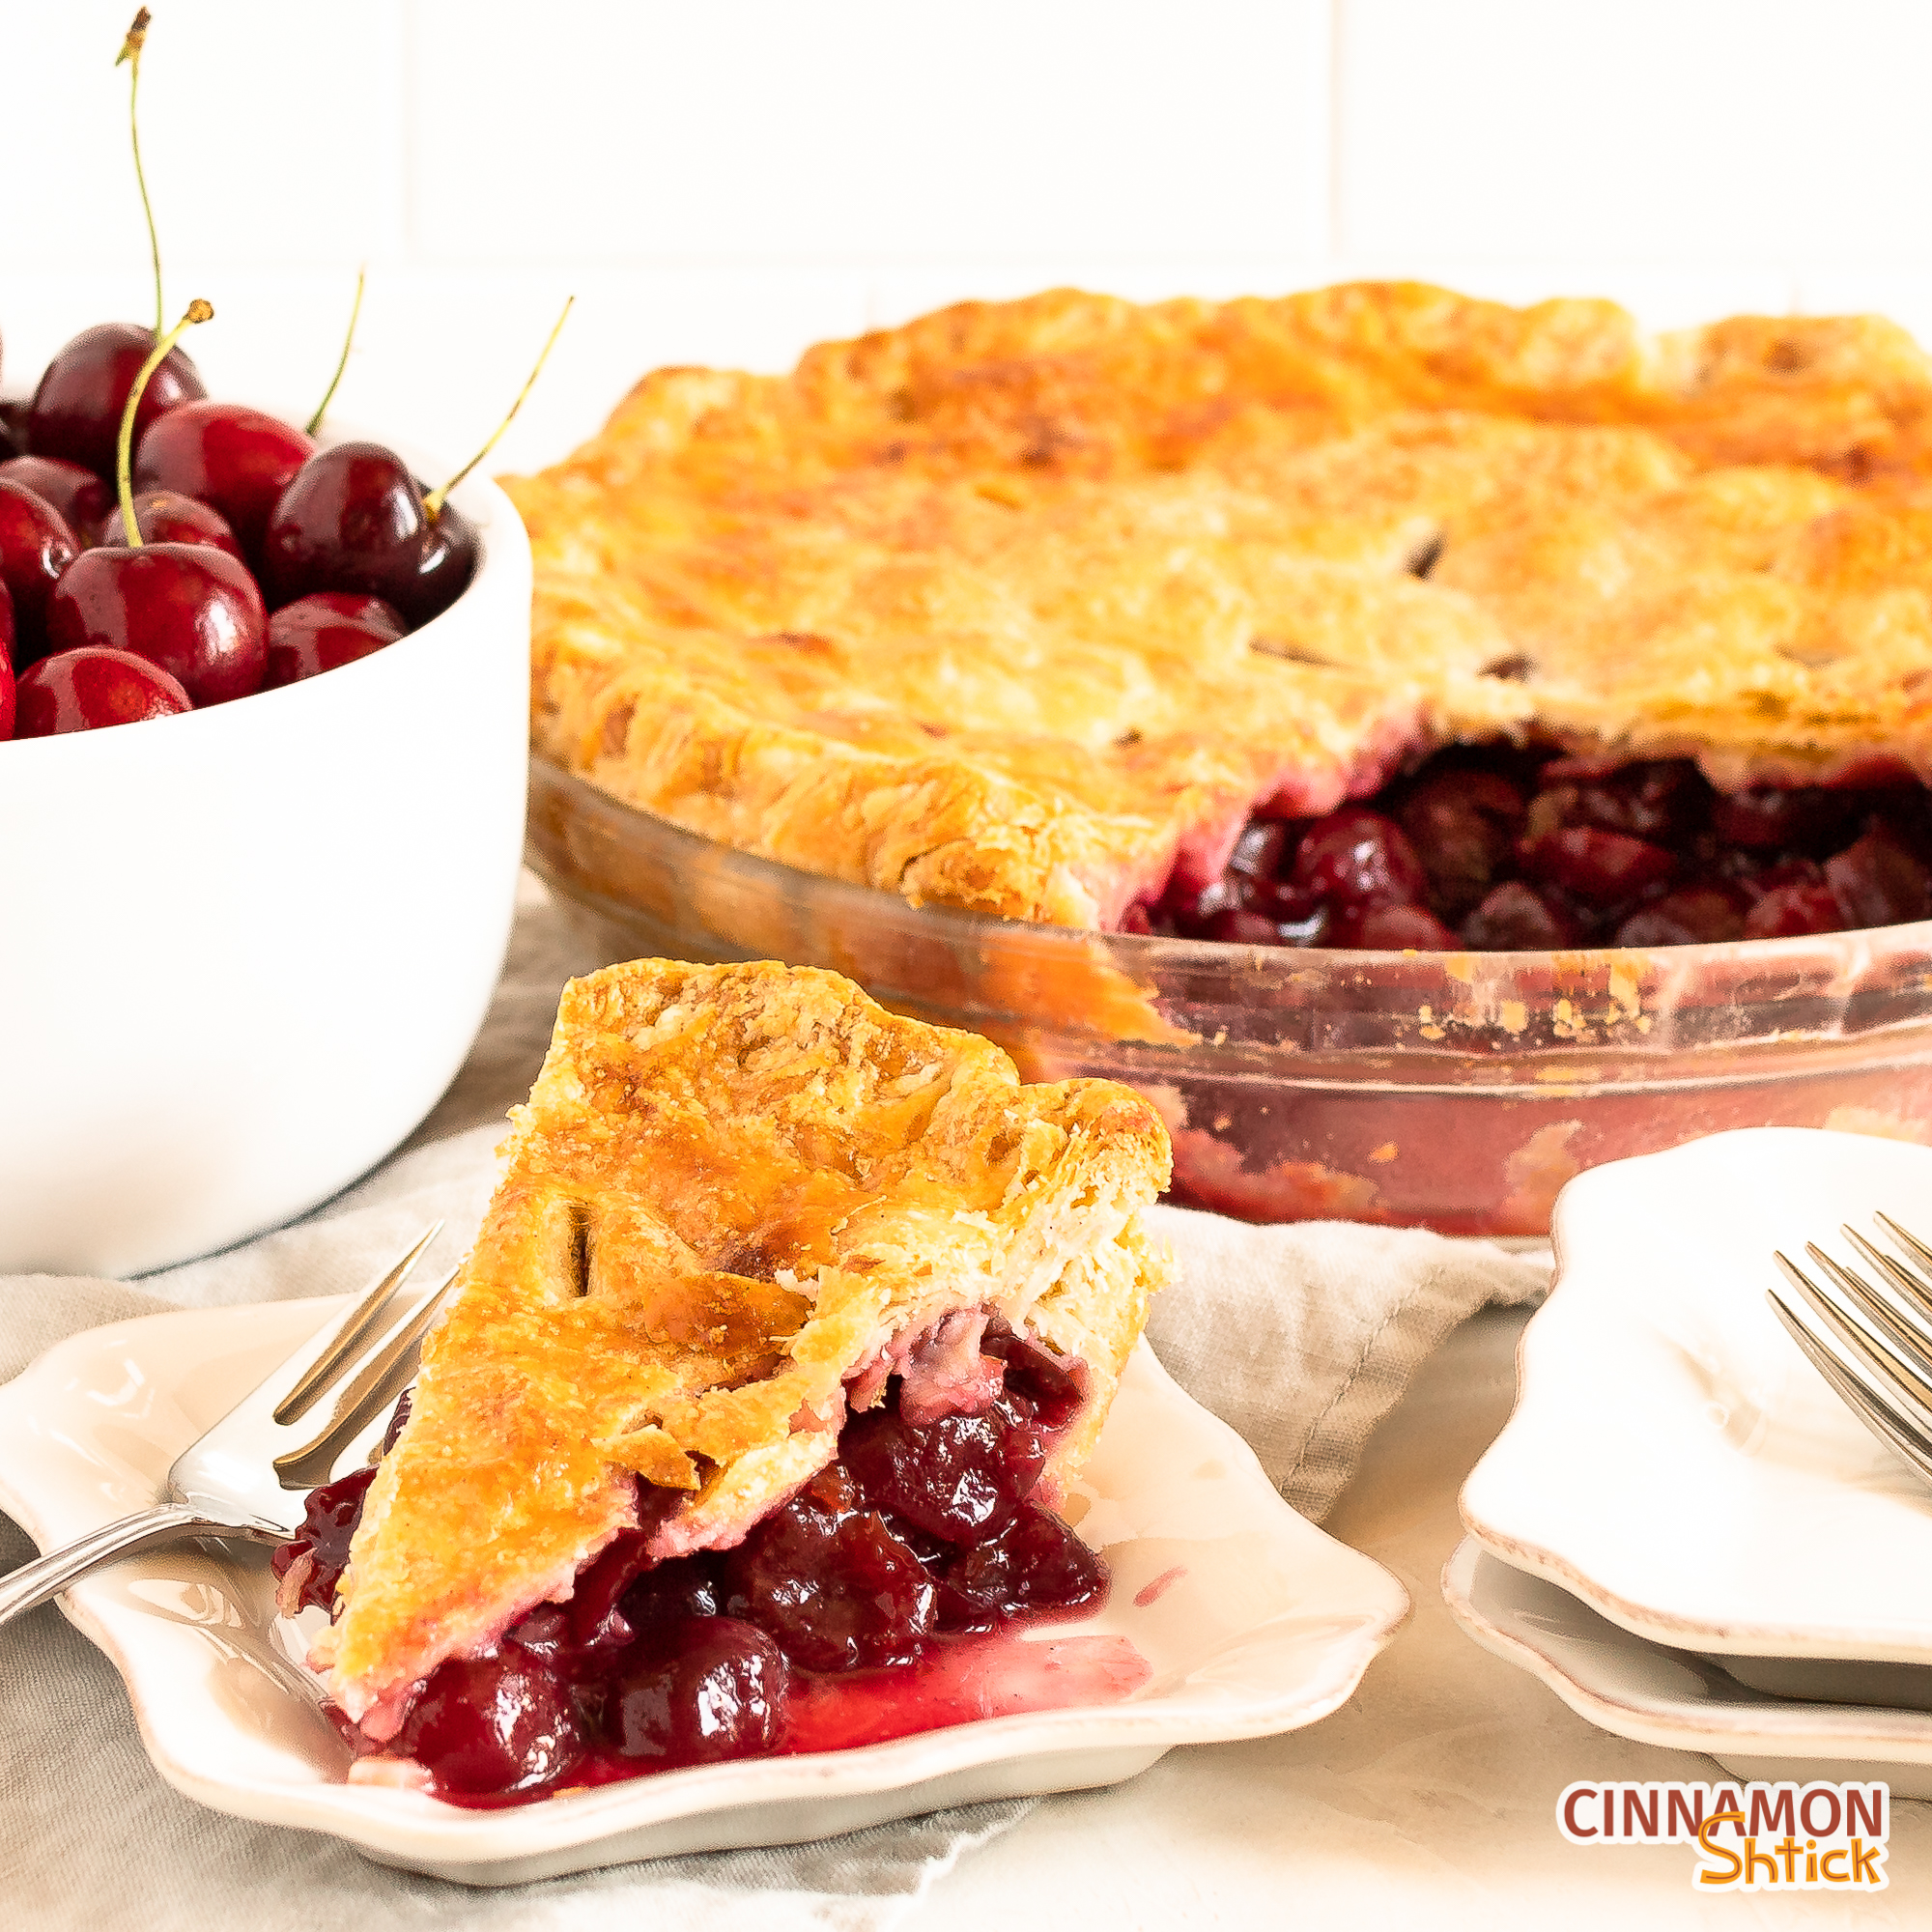 slice of cherry pie on a plate with rest of pie and bowl of cherries in background